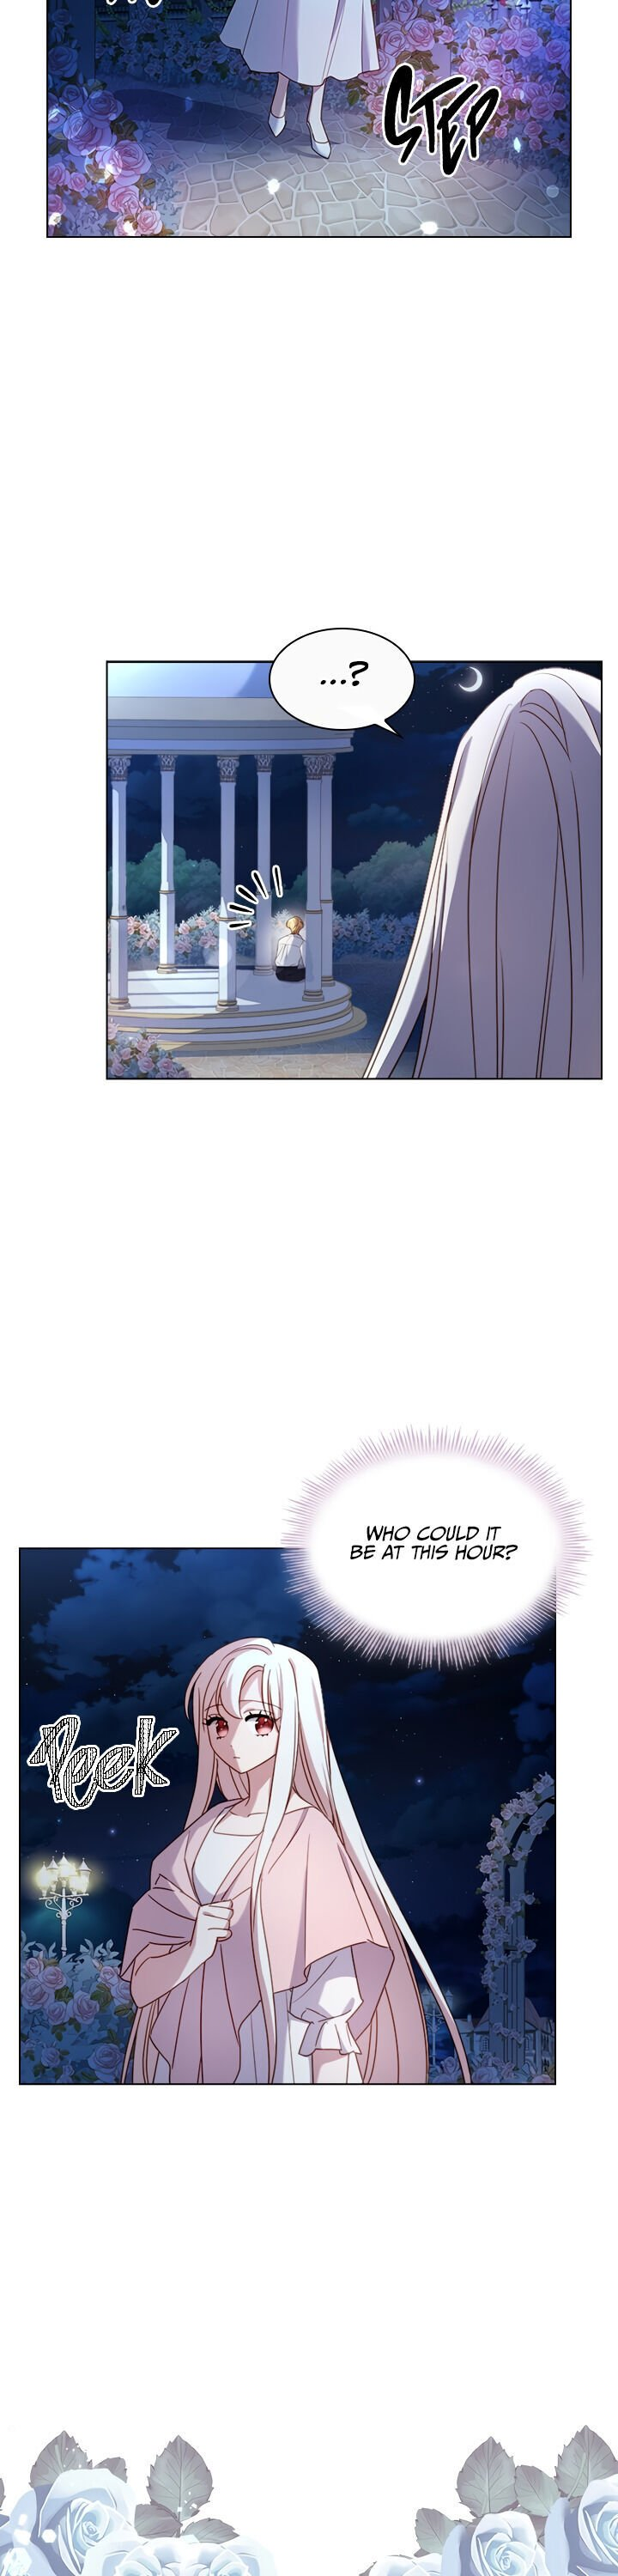 The Lady Wants to Rest - chapter 36 - #2